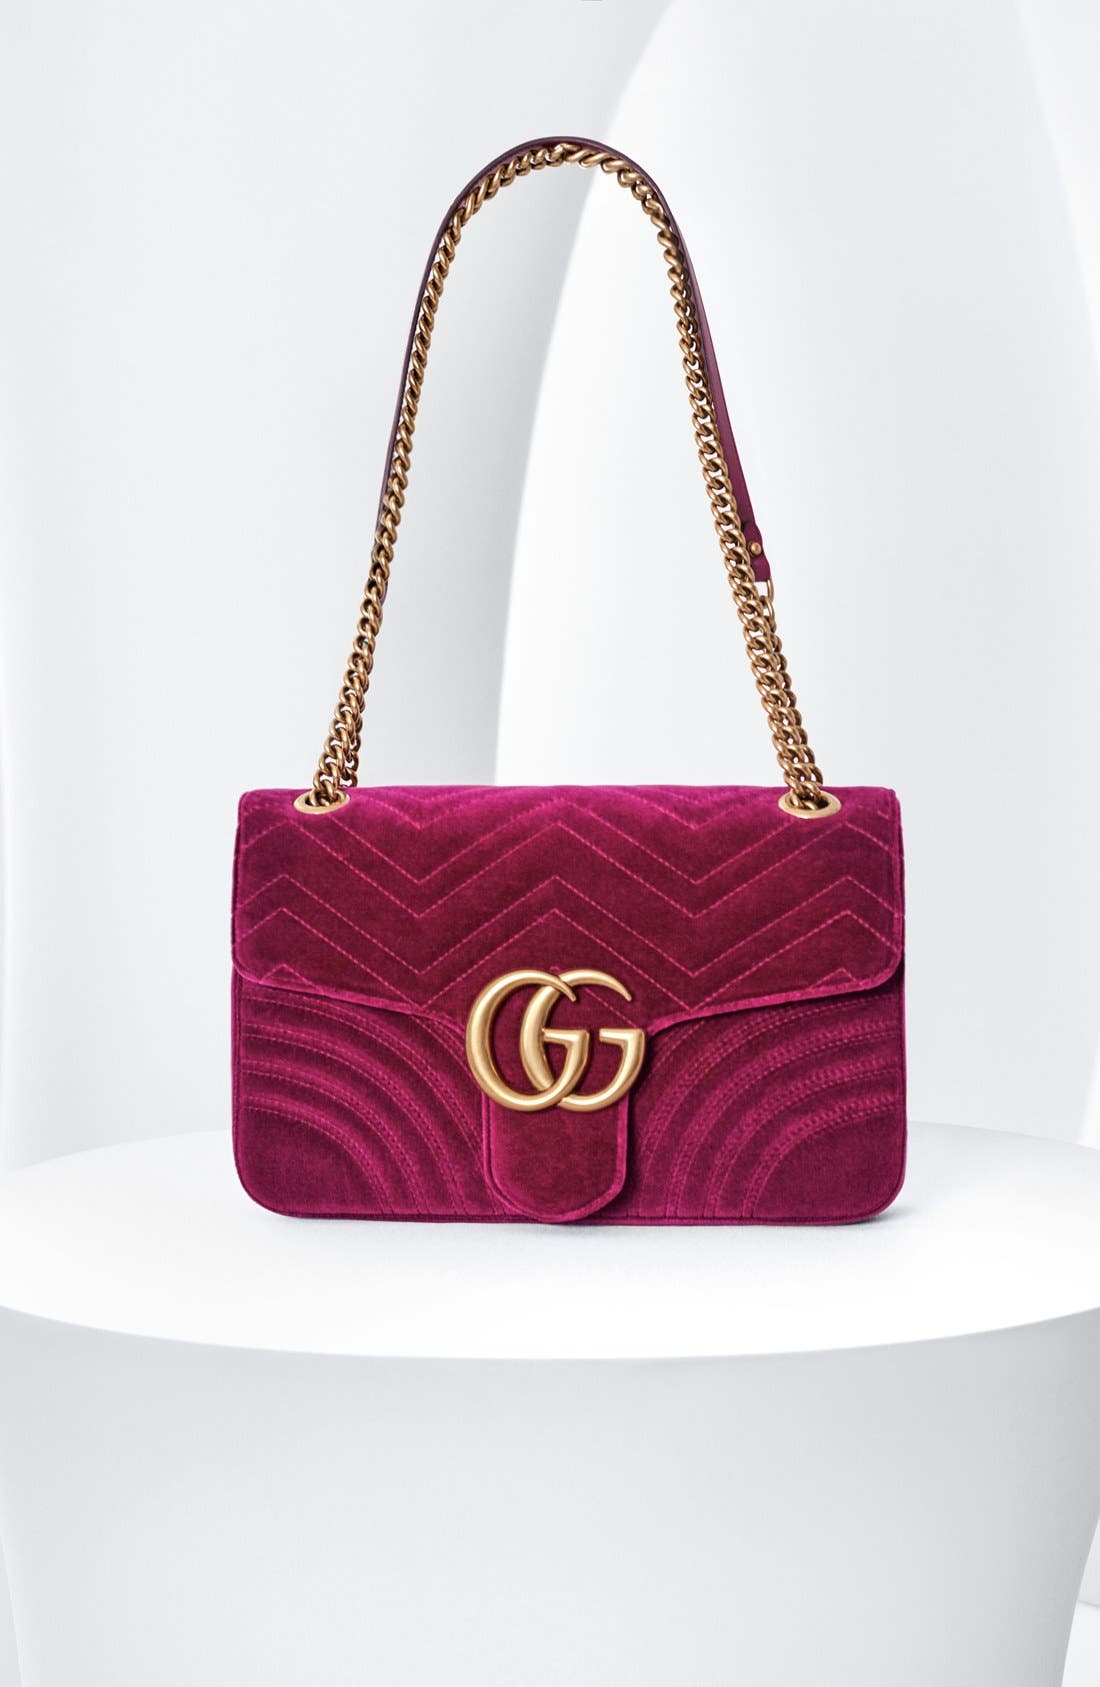 Medium GG Marmont 2.0 Matelassé Velvet Shoulder Bag,                             Alternate thumbnail 7, color,                             NERO